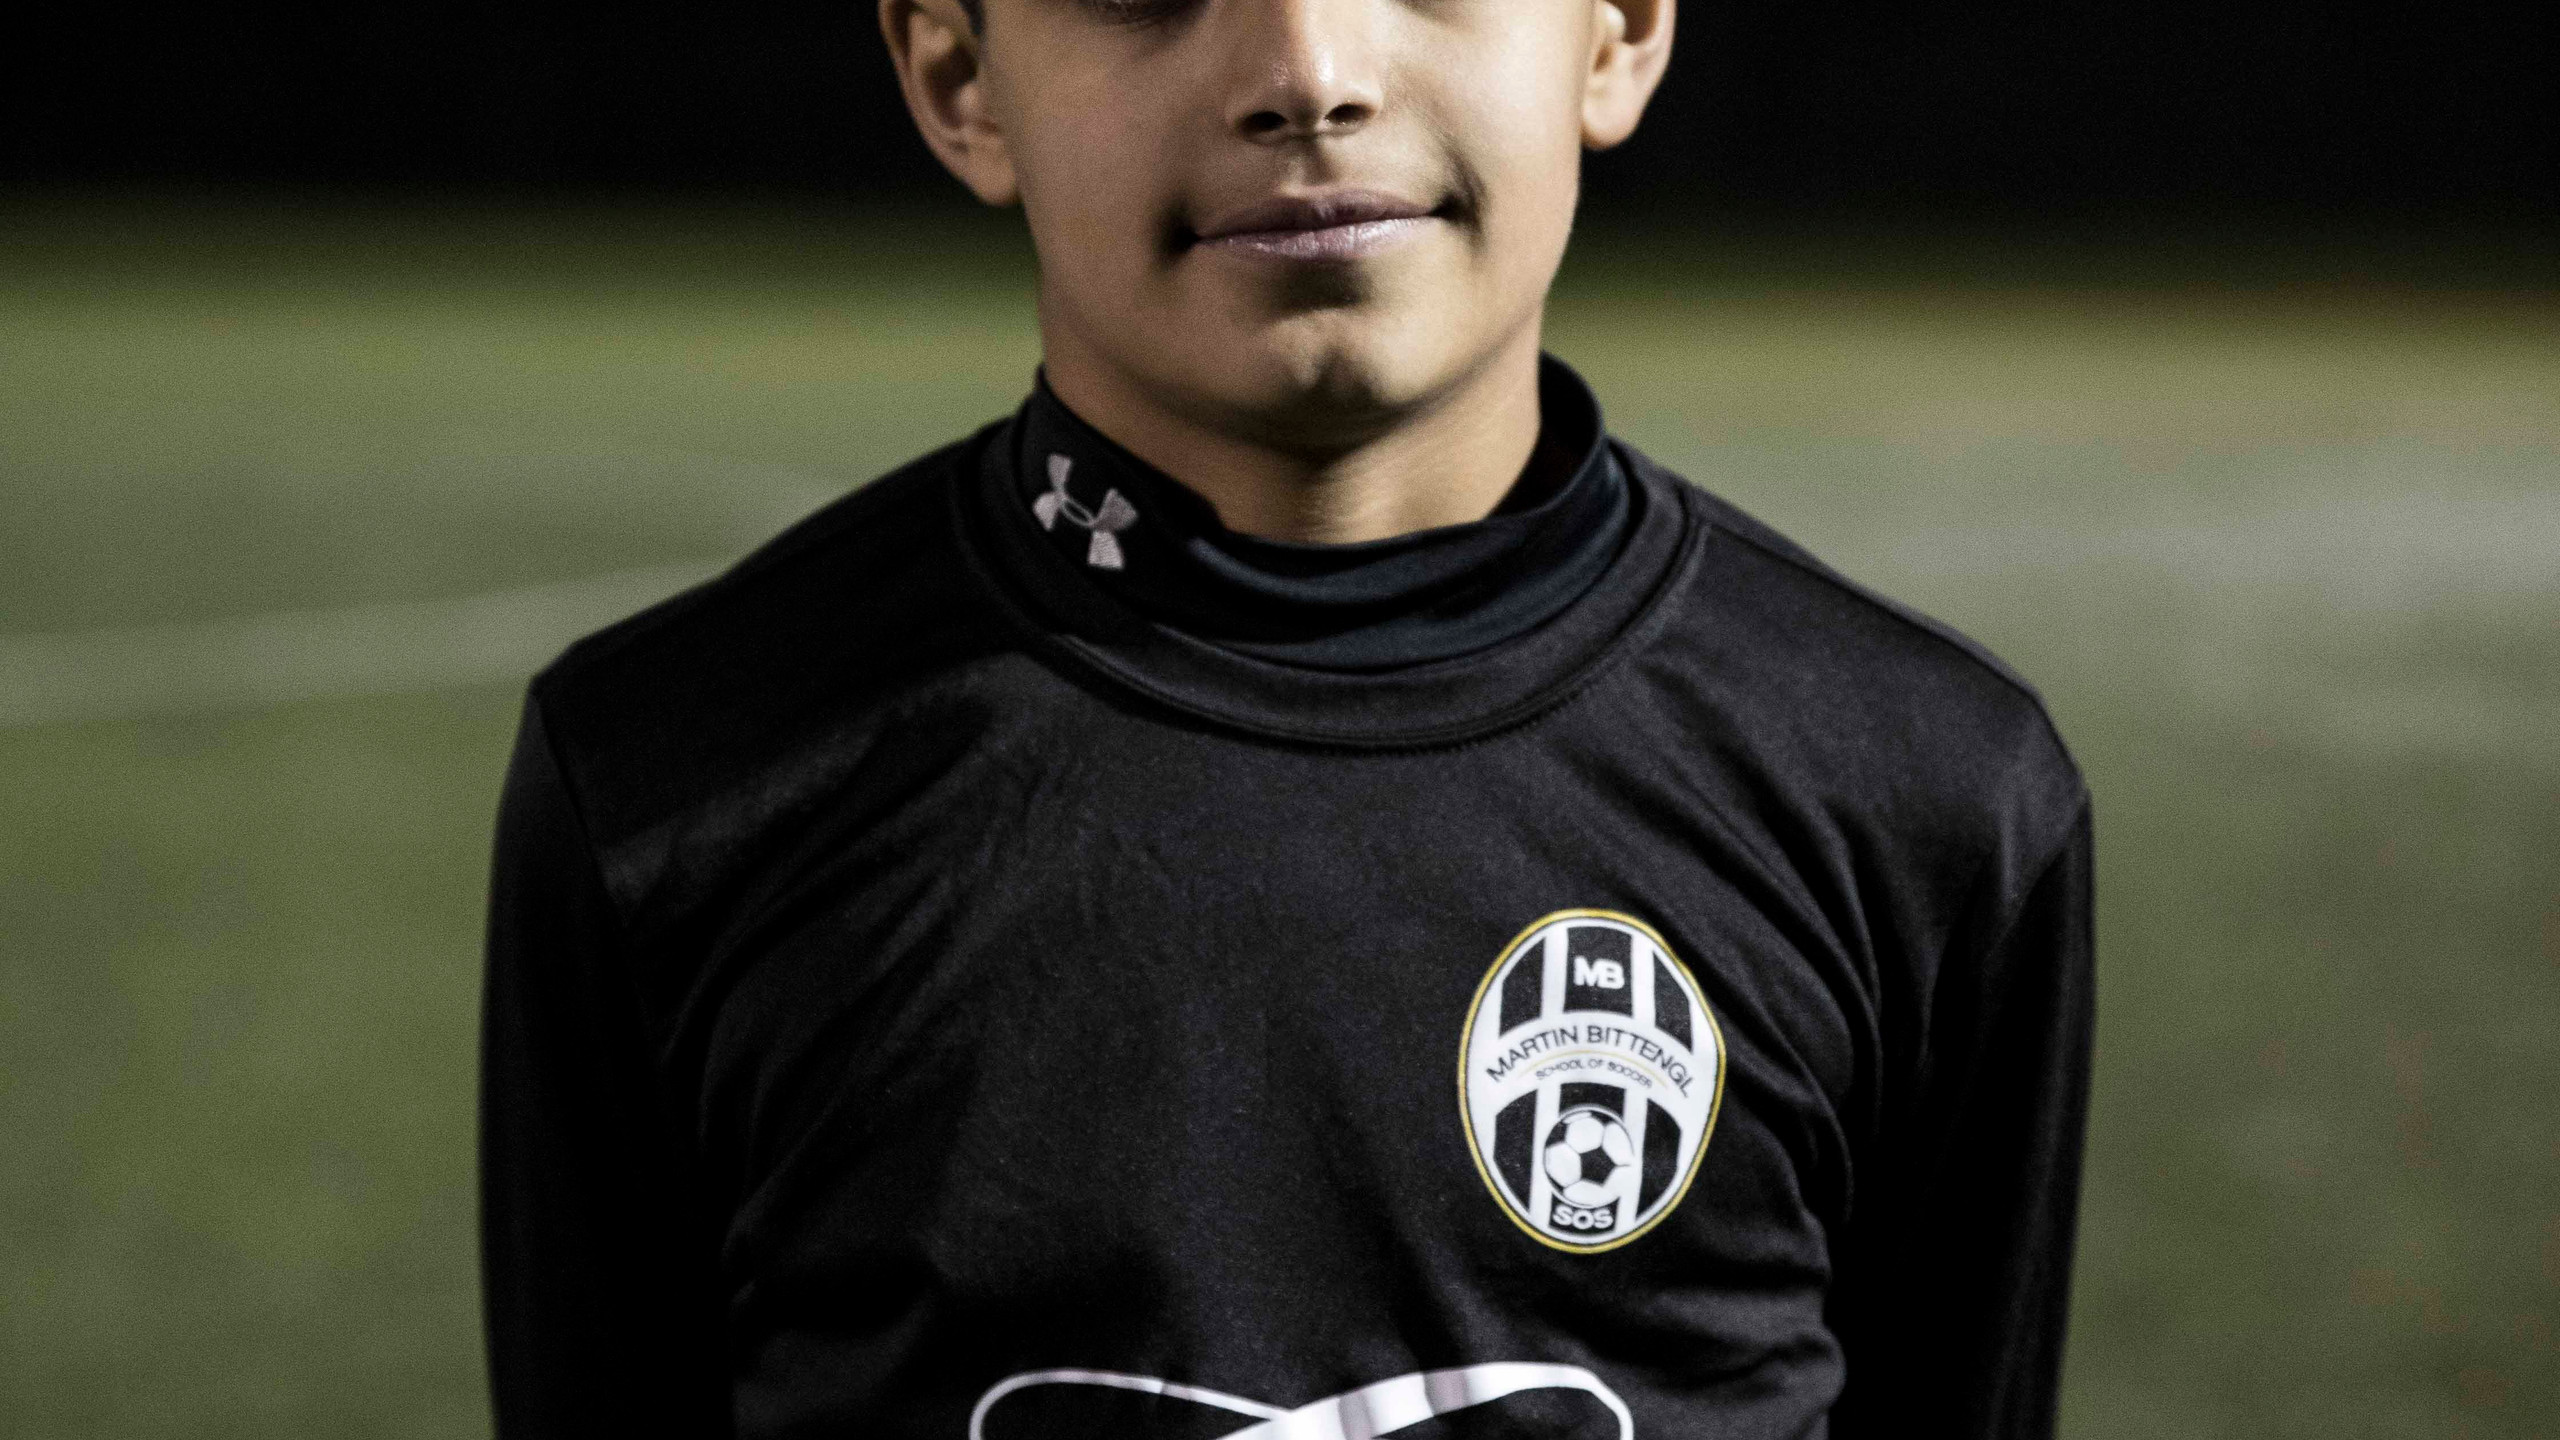 Martin Bittengl School of Soccer Player Headshots. Soccer academy located in Richmond, BC. Summer camps, spring training, private groups, personal training, and player development.10